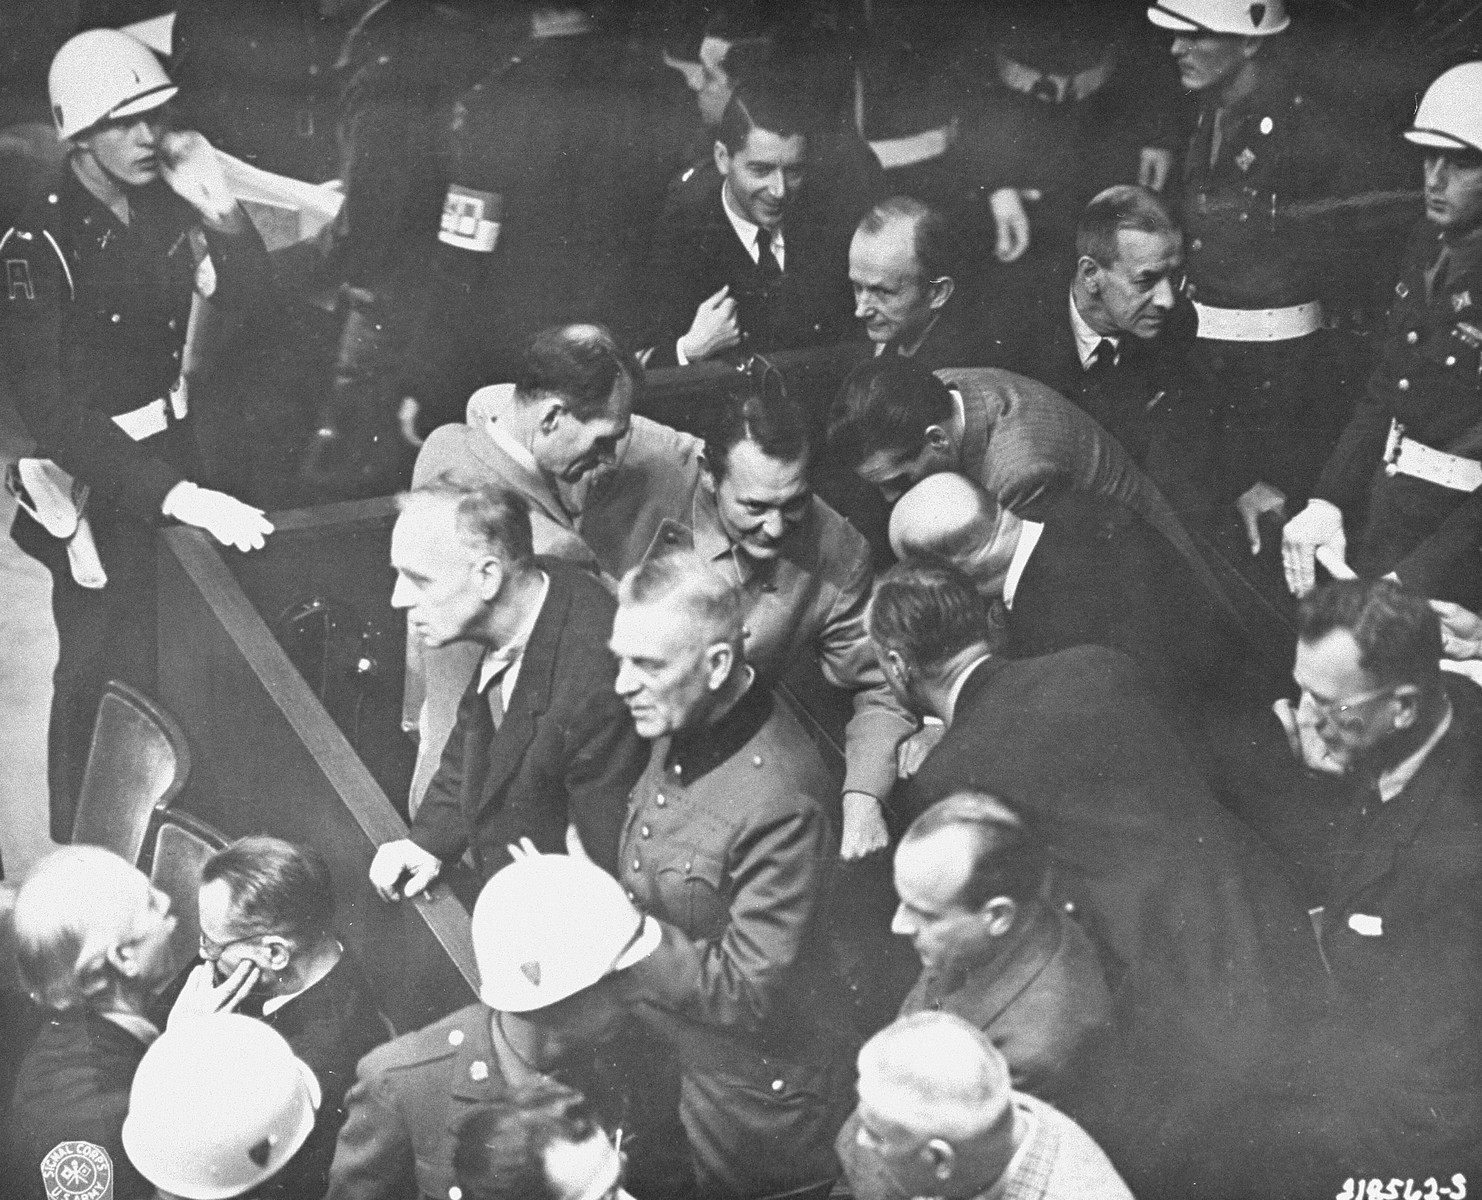 The defendants confer during a recess at the International Military Tribunal trial of war criminals at Nuremberg.  The guard in the upper right hand corner is possibly Albert P. Gobel.